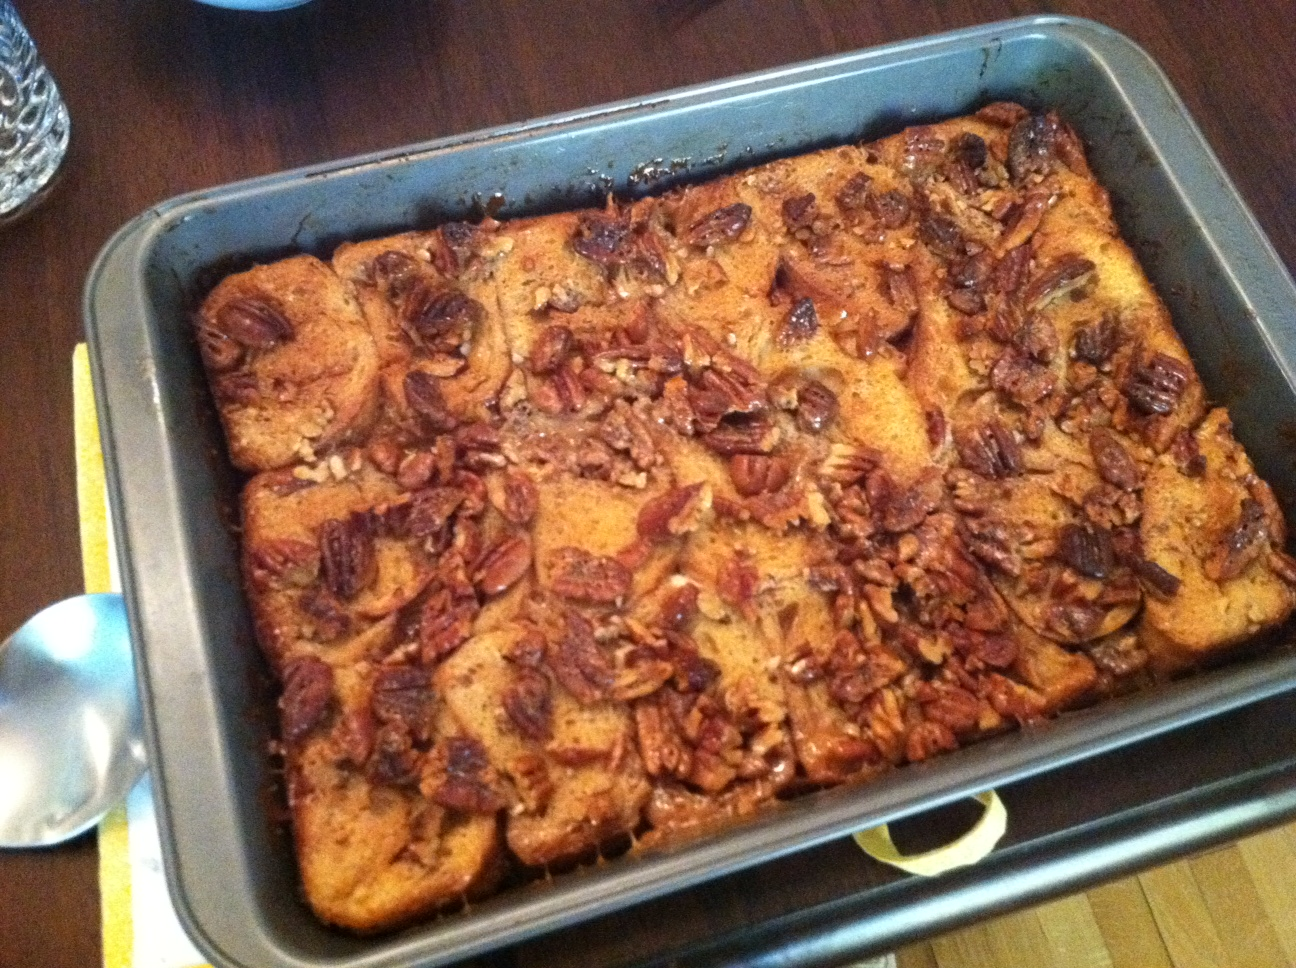 ... : Baked Butter-Pecan French Toast with Blueberry Syrup (Page 662